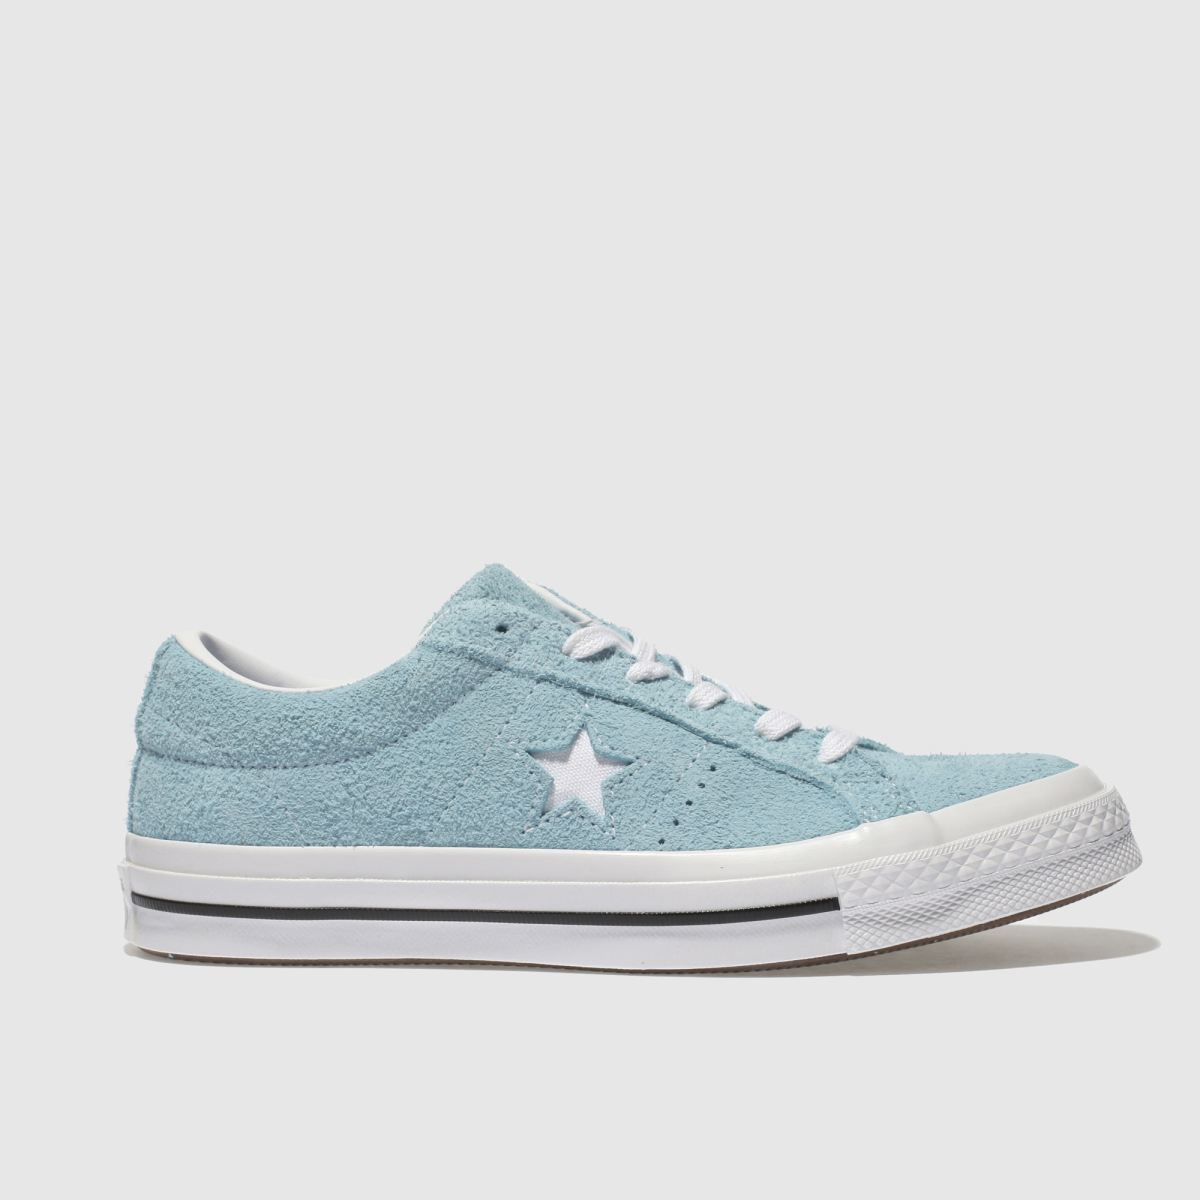 Converse Blue One Star Vintage Suede Trainers